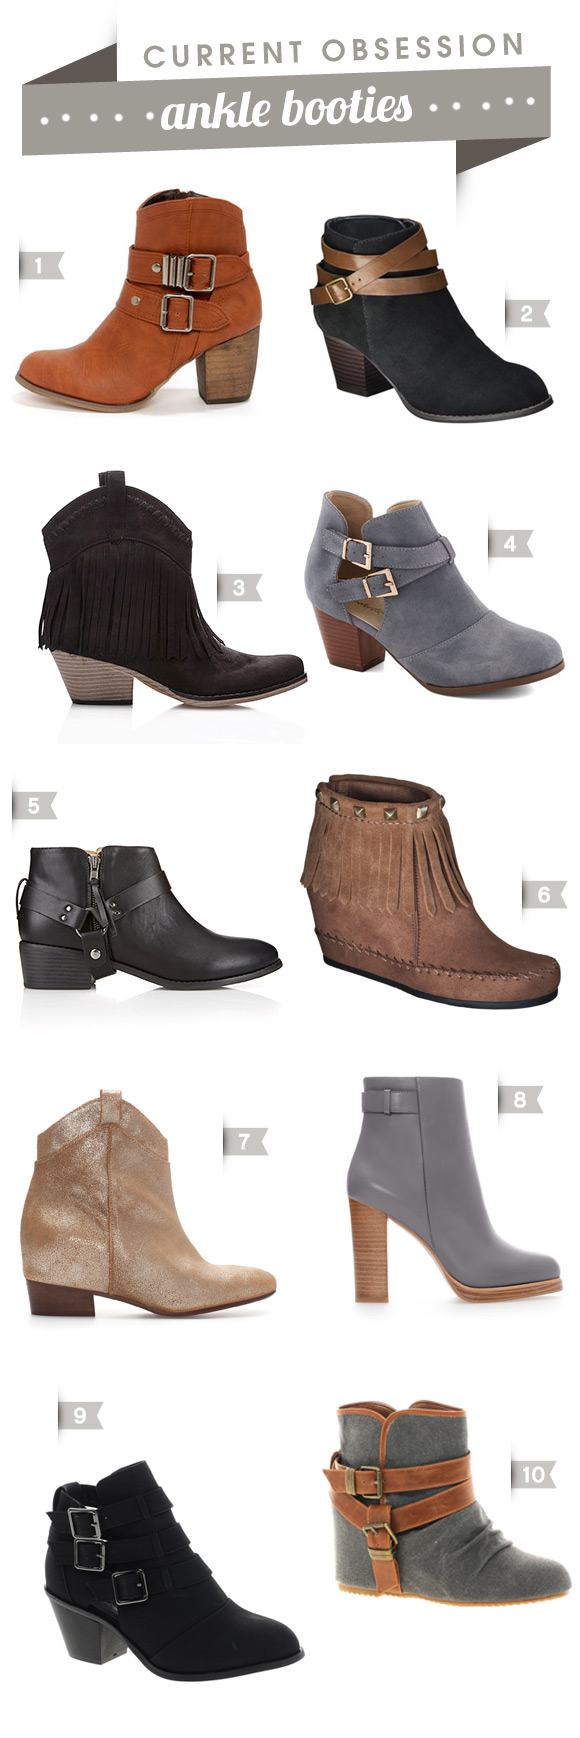 current_obsession_ankleboots